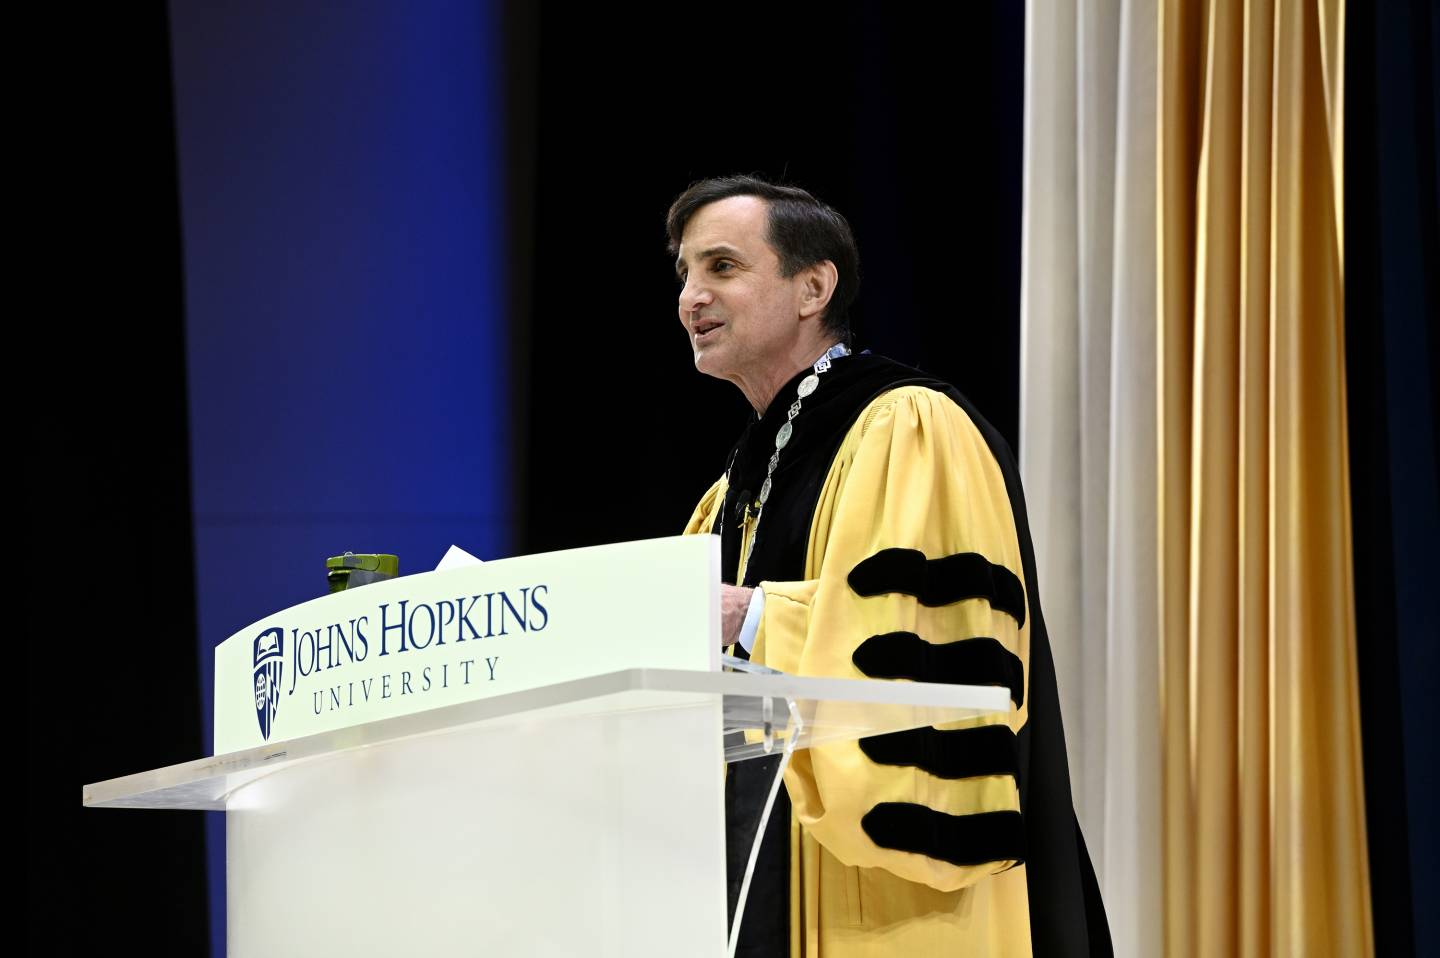 JHU President Daniels wears his customary Commencement regalia to give an address